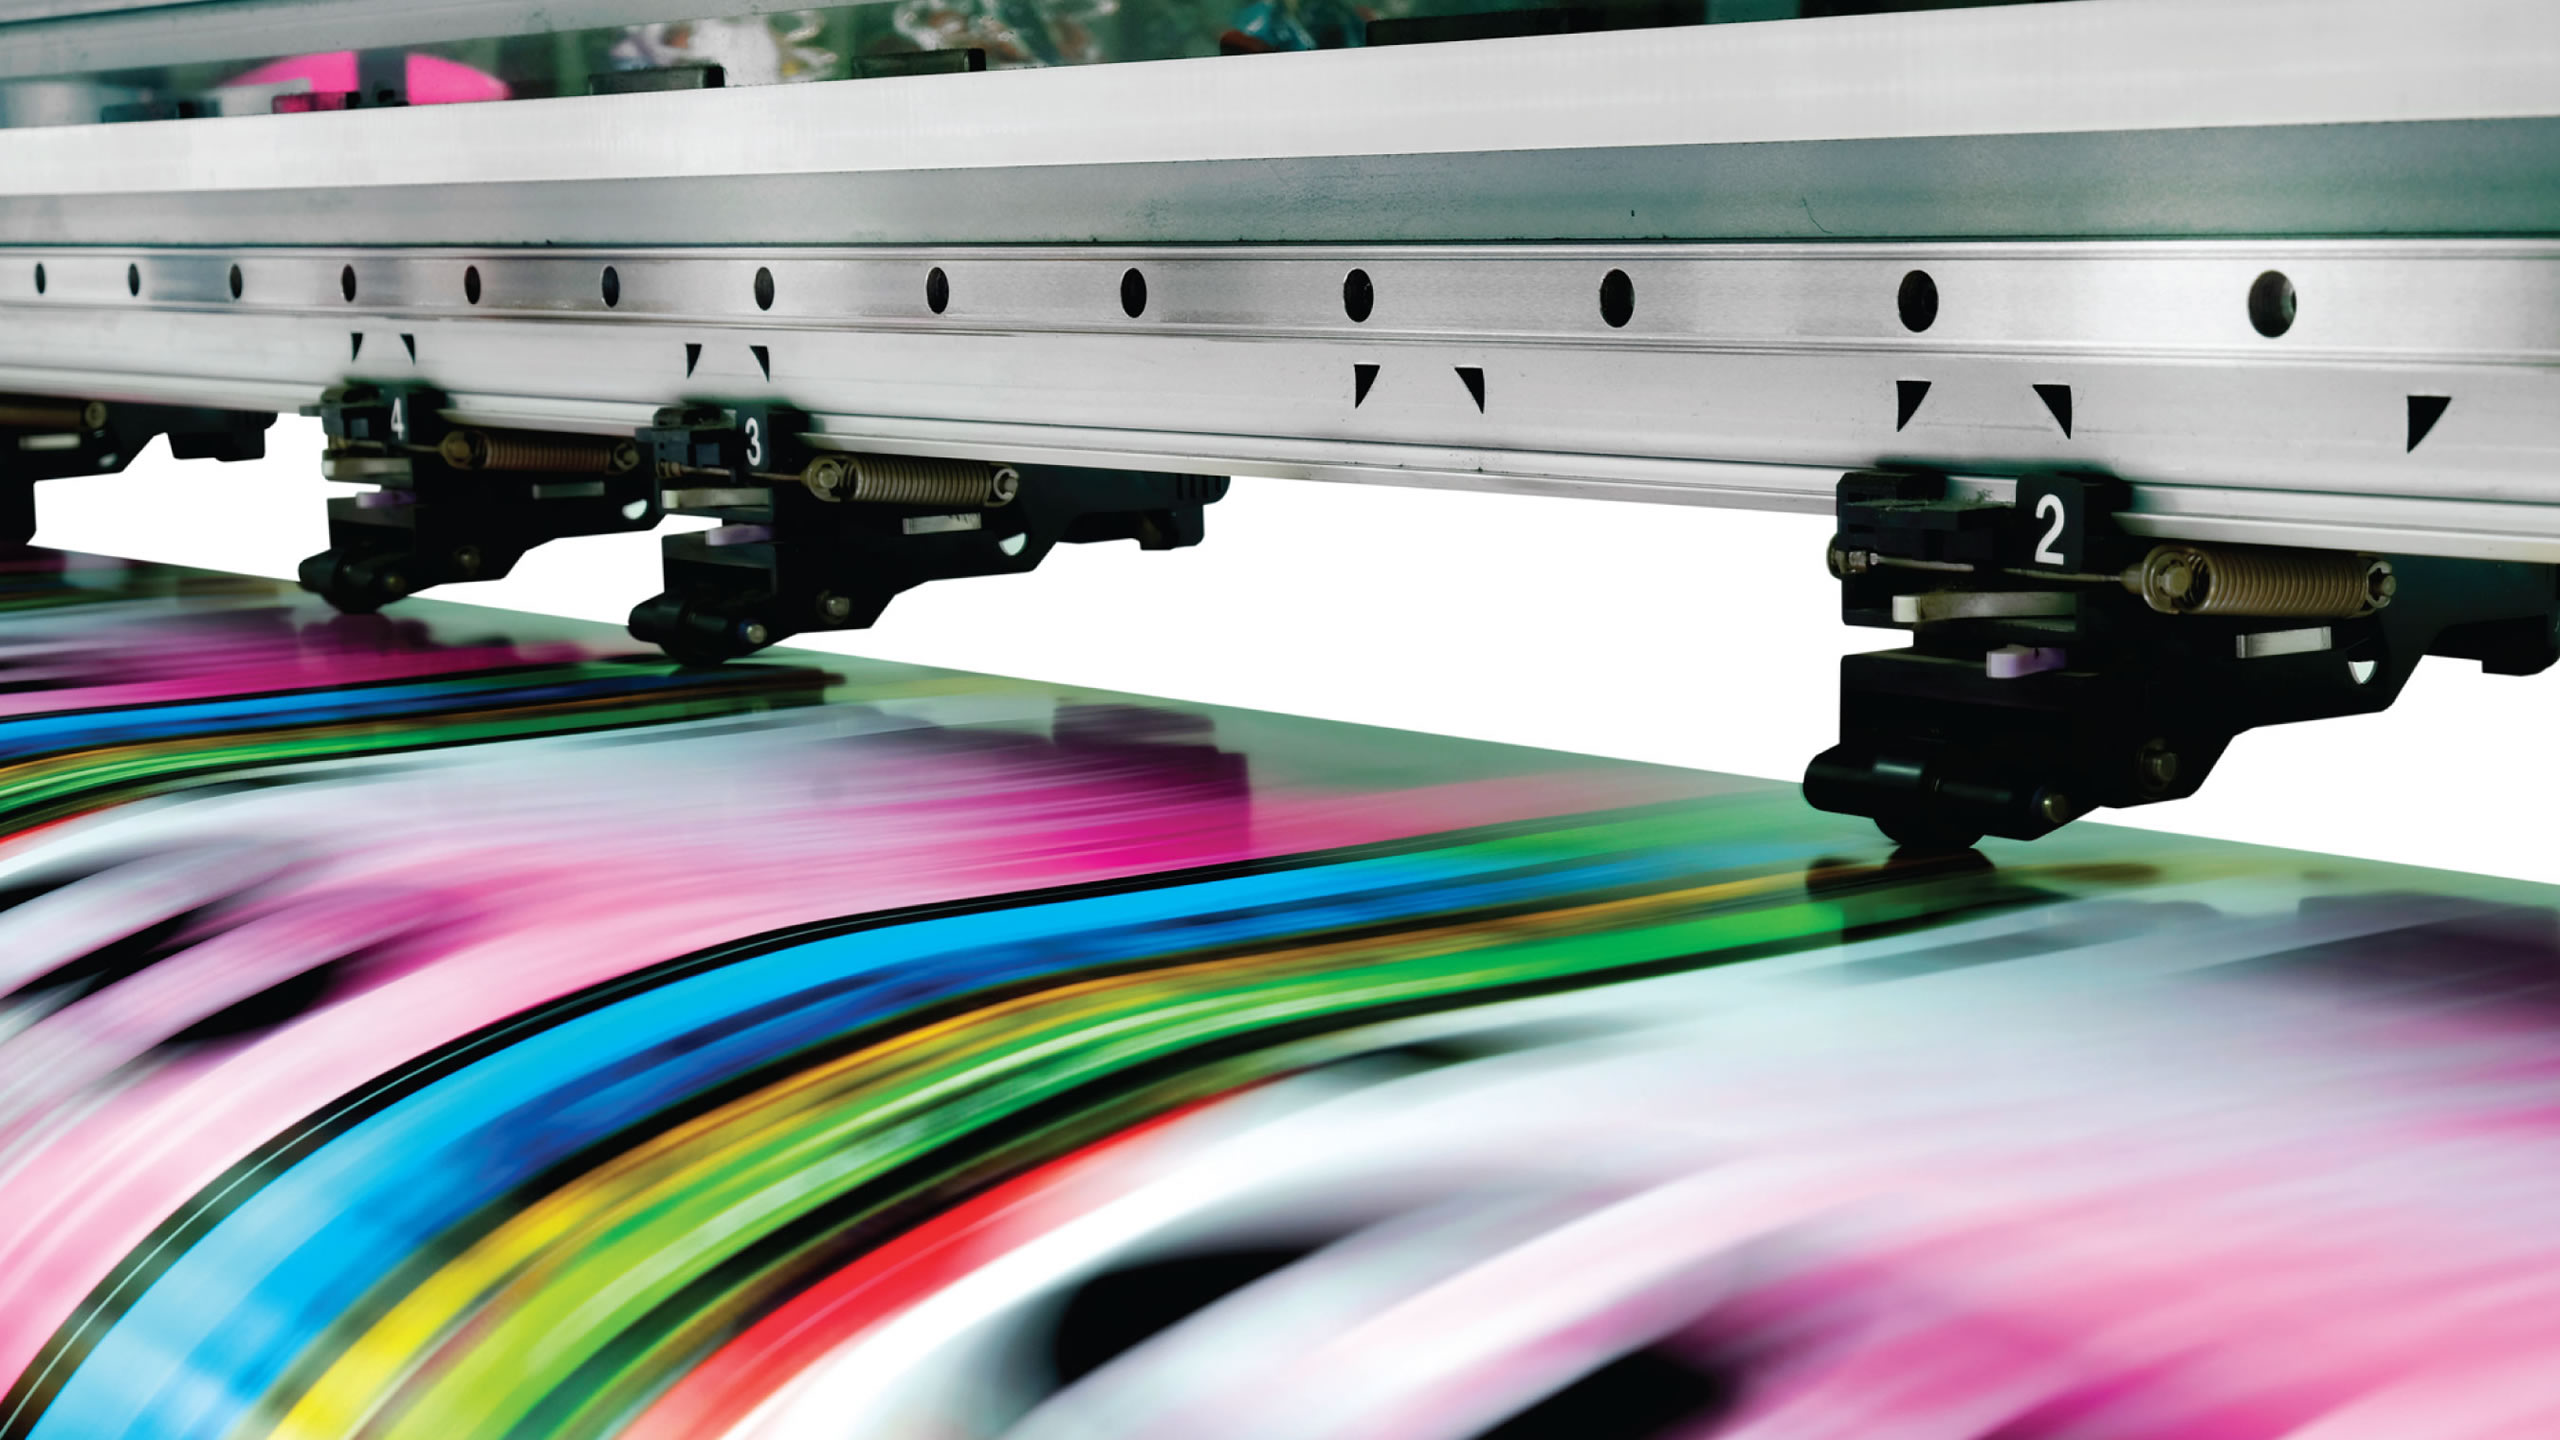 Printing in action of multiple color document. 23 years of High qualiy copy, printing, and ligitation document services including: copying, binding, printing, scanning, electronic bate stamping, and more